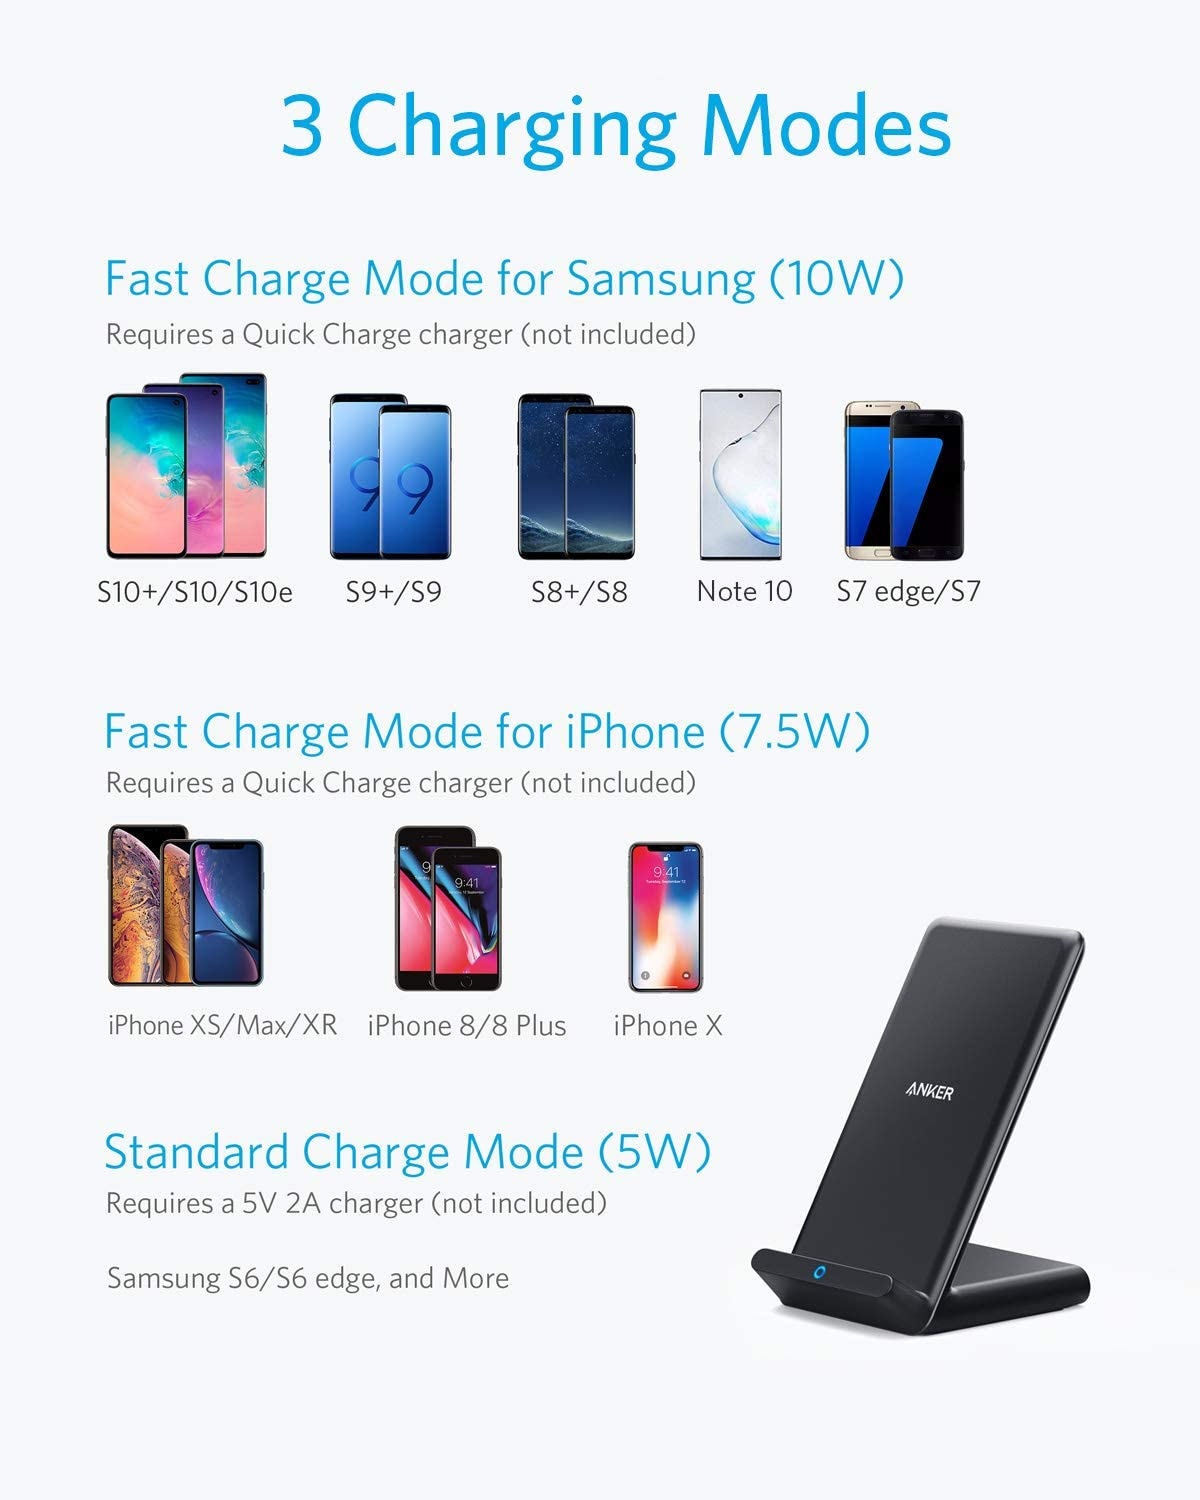 11 Pro Anker Wireless Charger 7.5W for iPhone 11 Note 10 Note 9 Note 8 Xs Max 11 Pro Max 10W for Galaxy S10 S9 S8 XR 8Plus X 8 No AC Adapter 2 Pack PowerWave Stand Qi-Certified XS